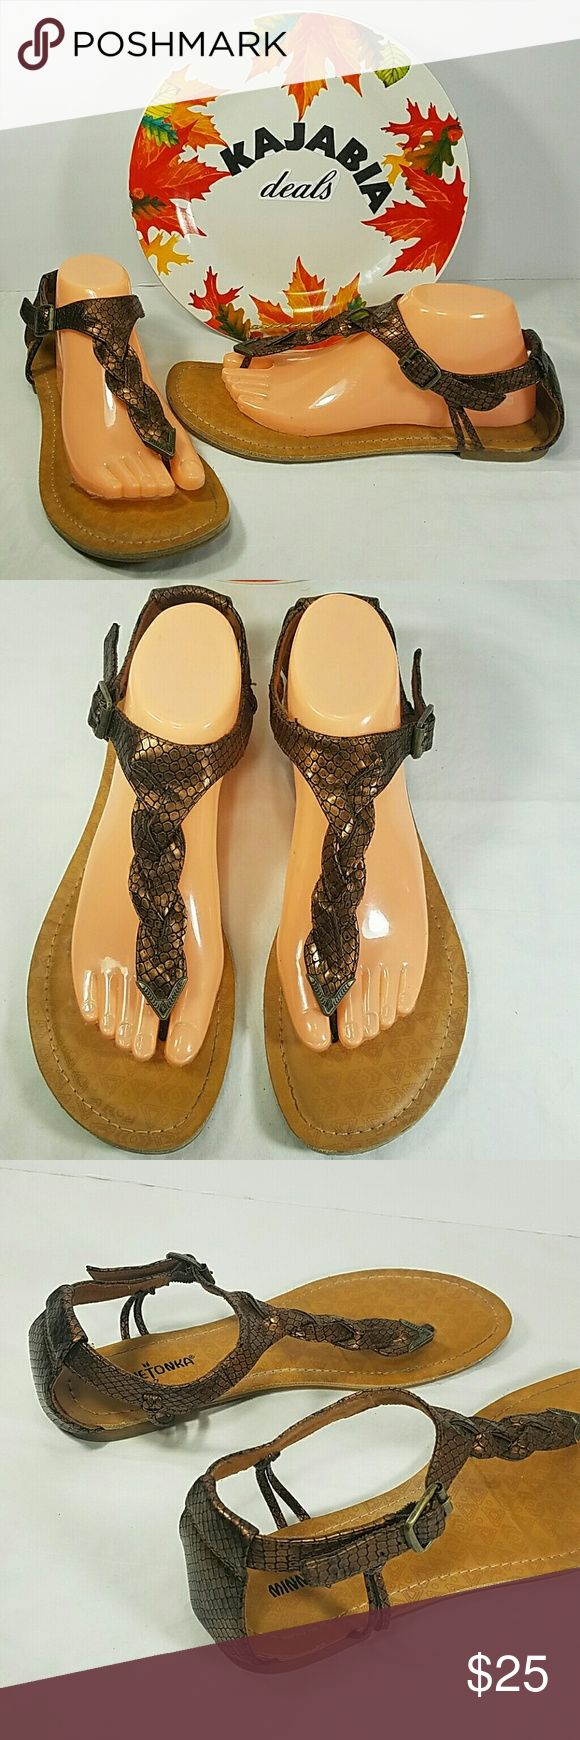 NEW LISTIMG💥MINNETONKA Sandals. Size 10 Excellent condition Minnetonka sandals Size.. 10 Pre owned. No rips. No spots Color.. cooper and tan Fabric..all man made materials  Great preown condition. With a lot of life left.  Perfect to wear all spring and summer season. Only signs of wear are in soles, other than that perfect condition  Perfect for any occasion!!  🚫NO TRADES 🚫NO MODELING 🔵REASONABLE OFFERS WELCOME !! Minnetonka Shoes Sandals